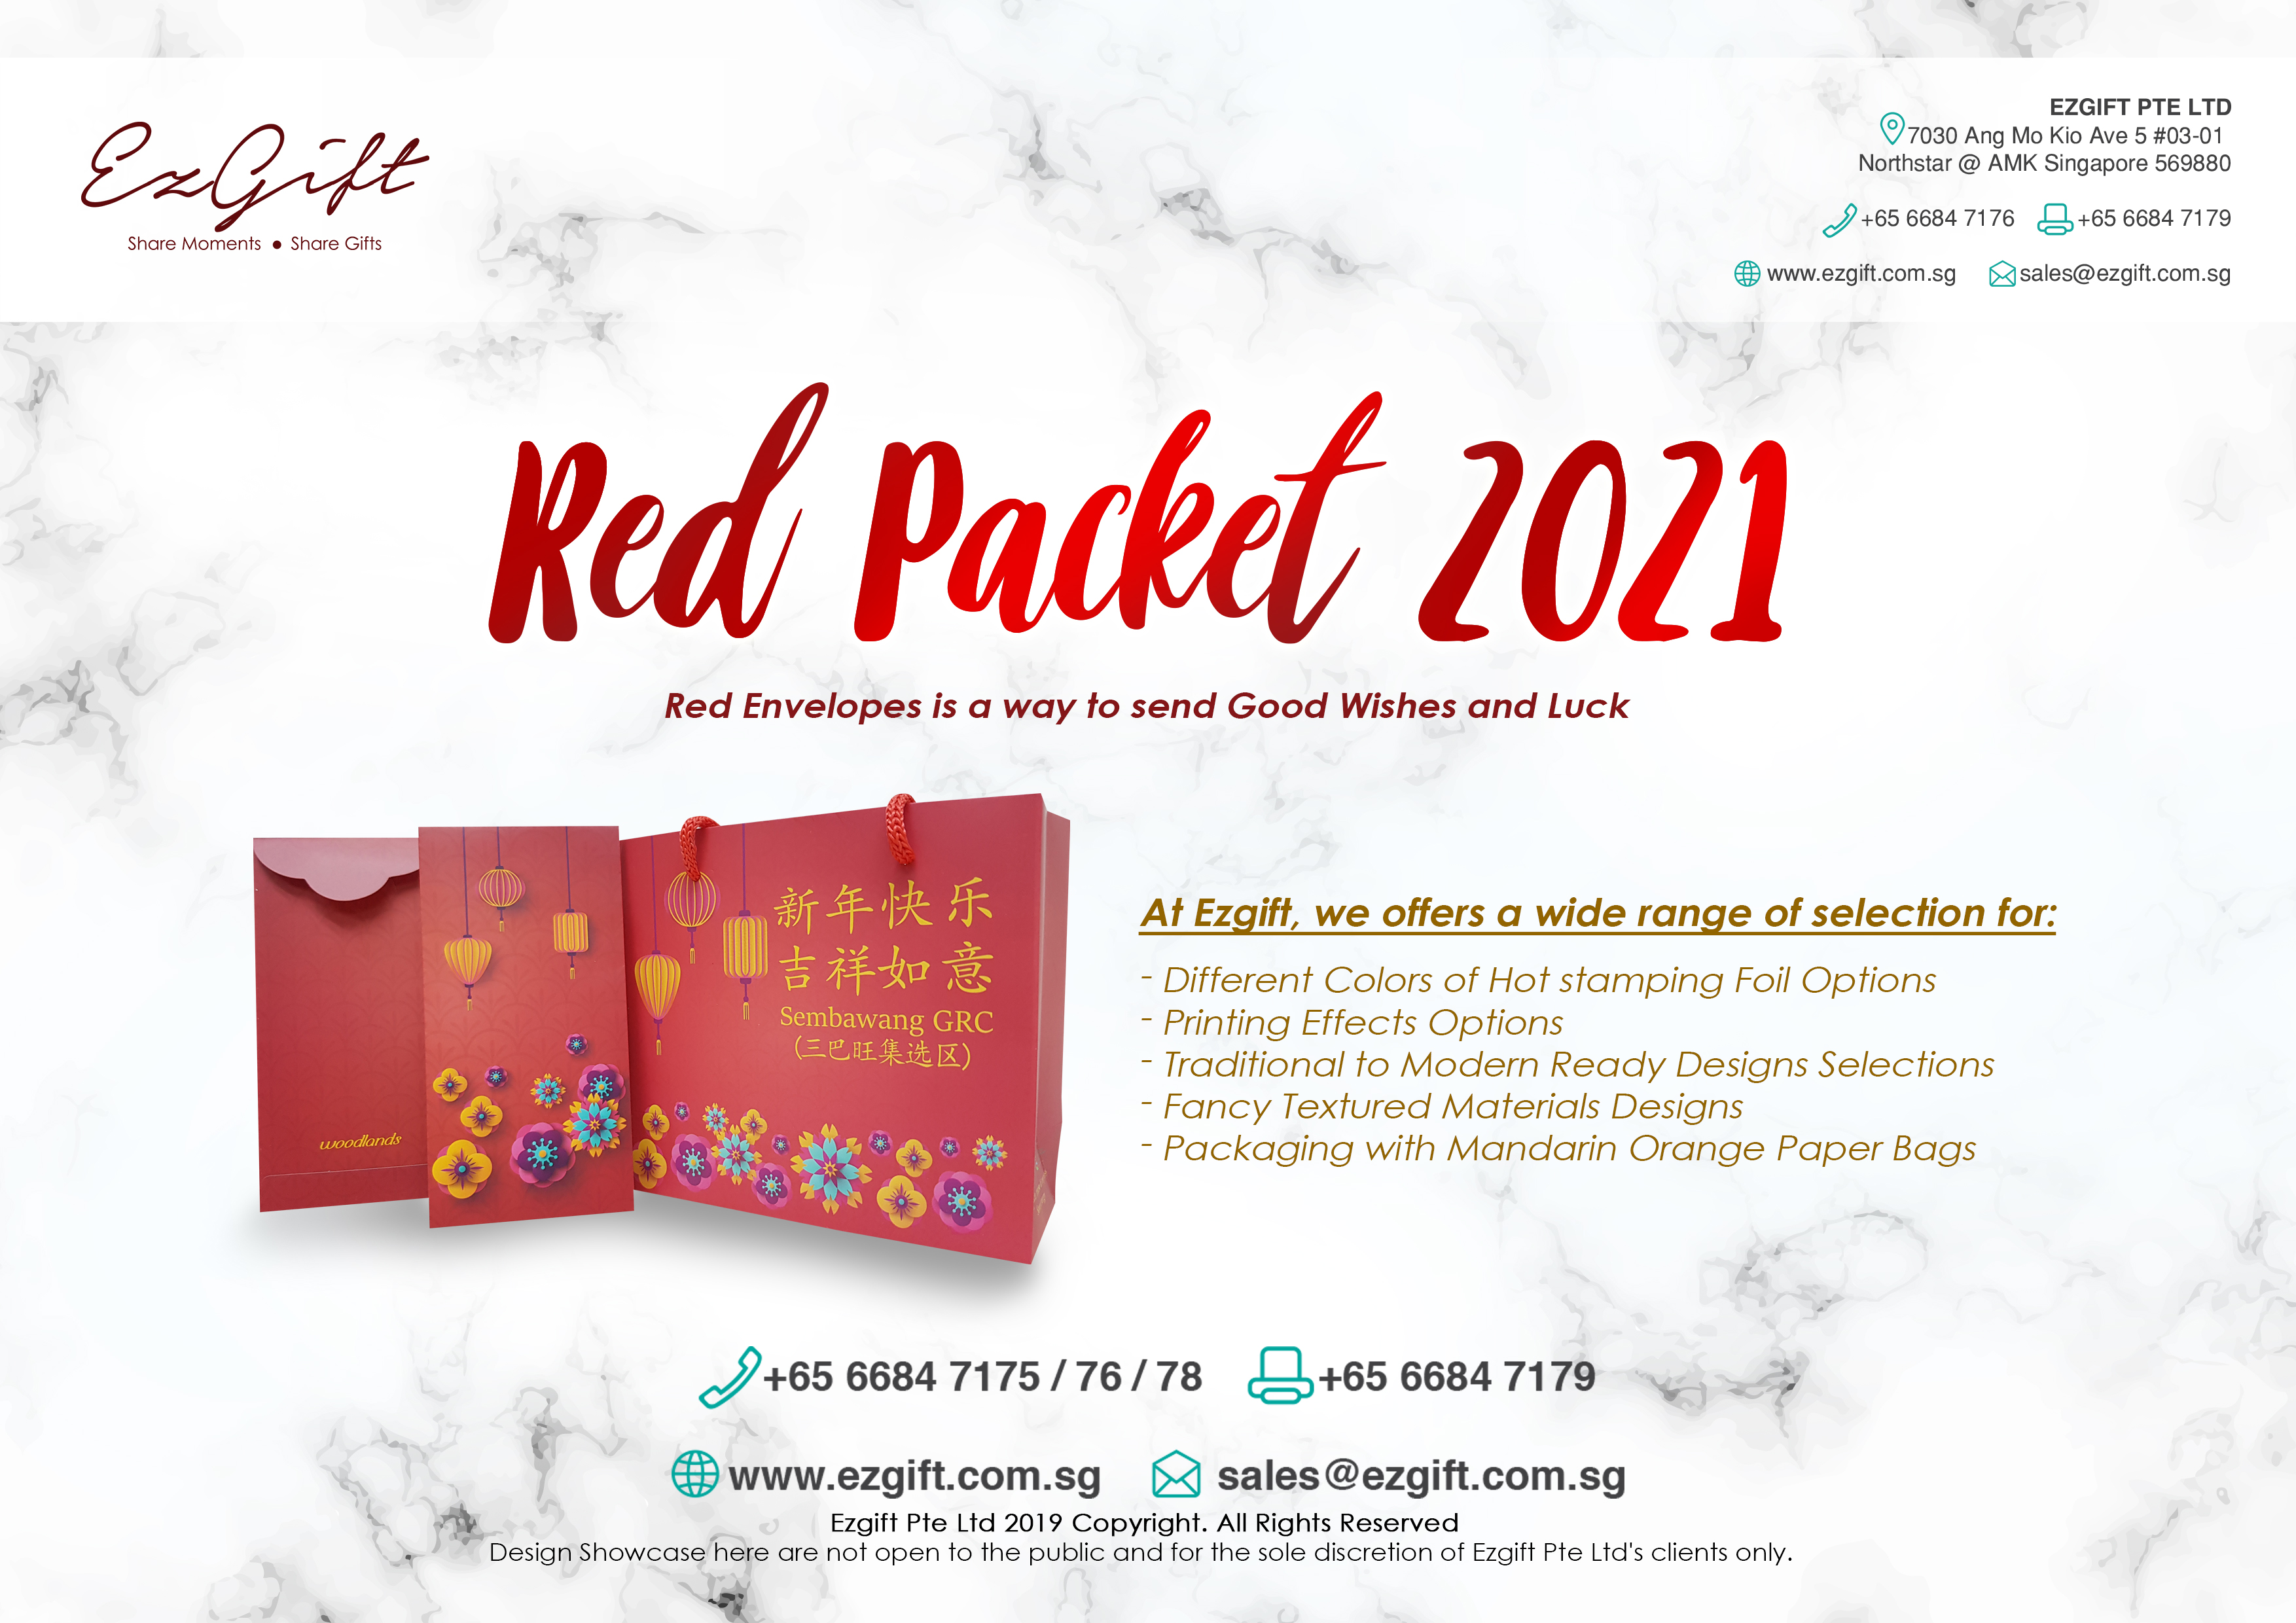 Ezgift_Red Packet_2021_1